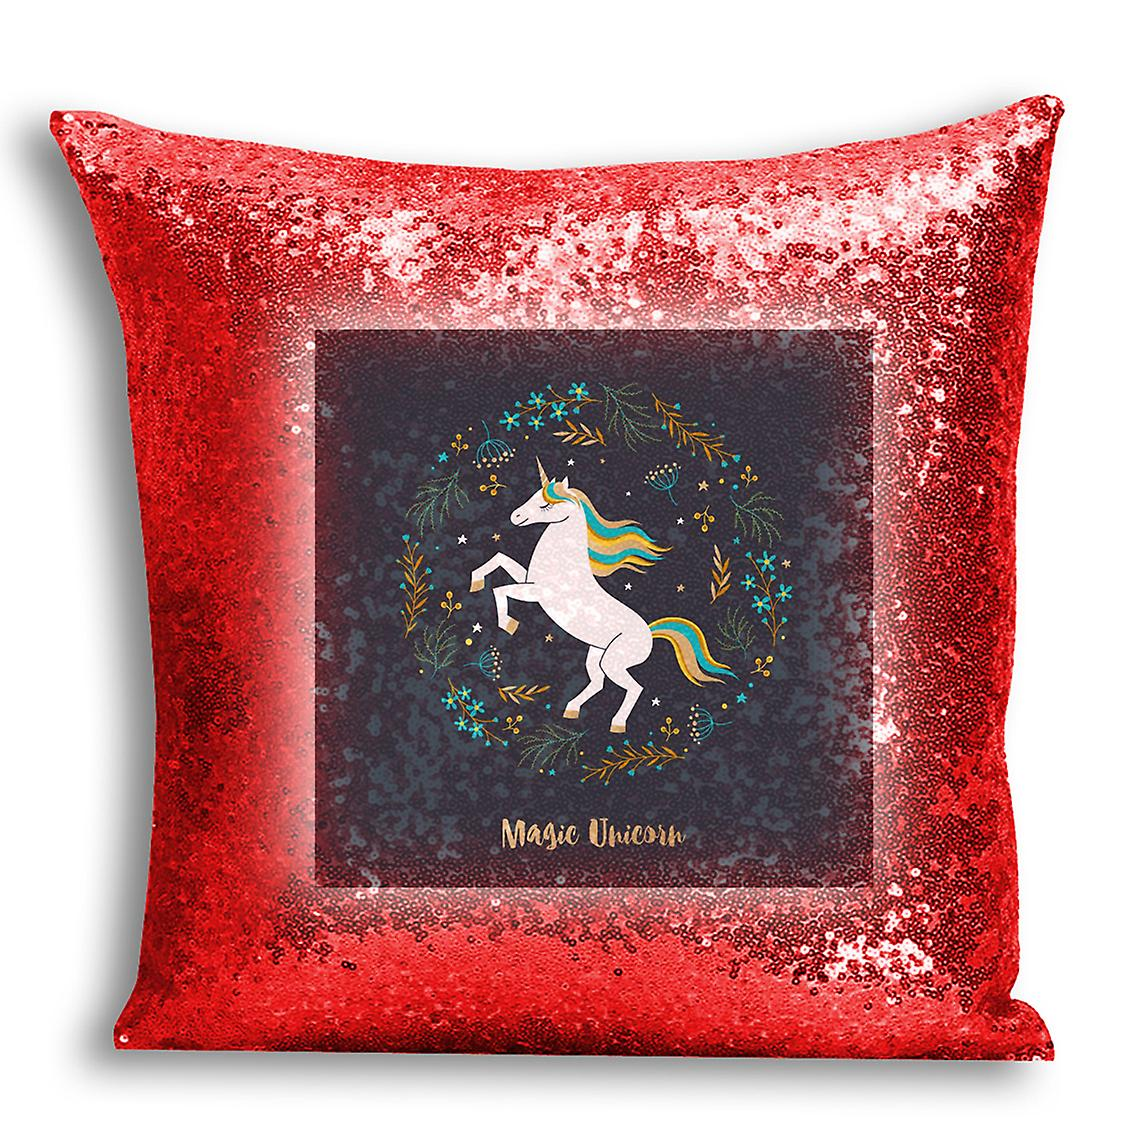 tronixsUnicorn Home I Printed Sequin 12 CushionPillow Cover Decor Design Red For H2WIED9